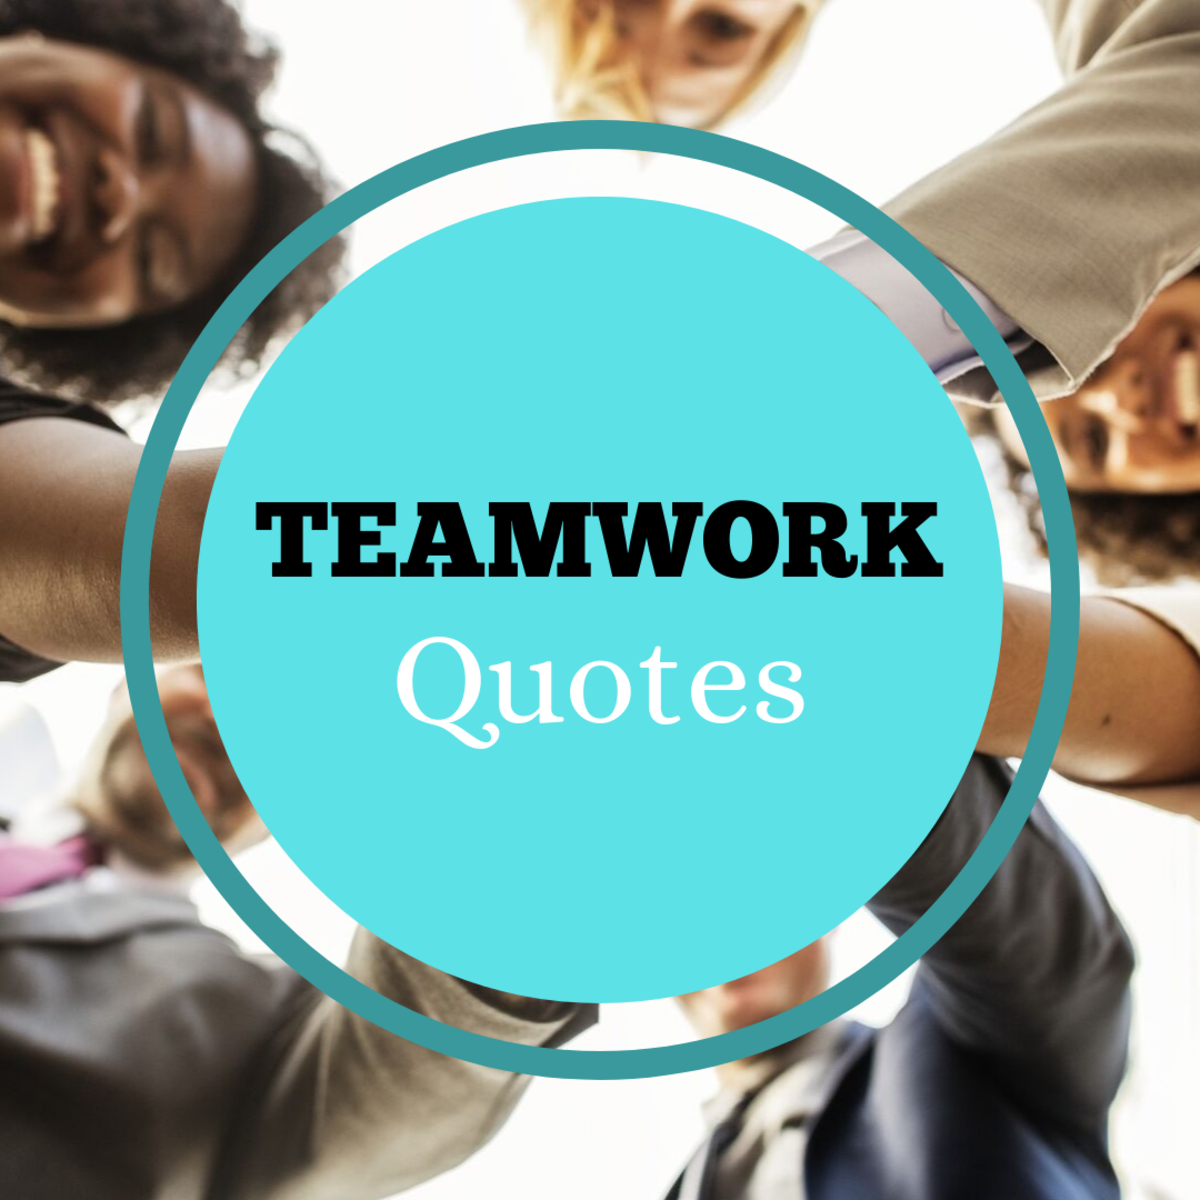 Discover some quotes about teamwork and being a team player from famous coaches, authors, and motivational speakers.